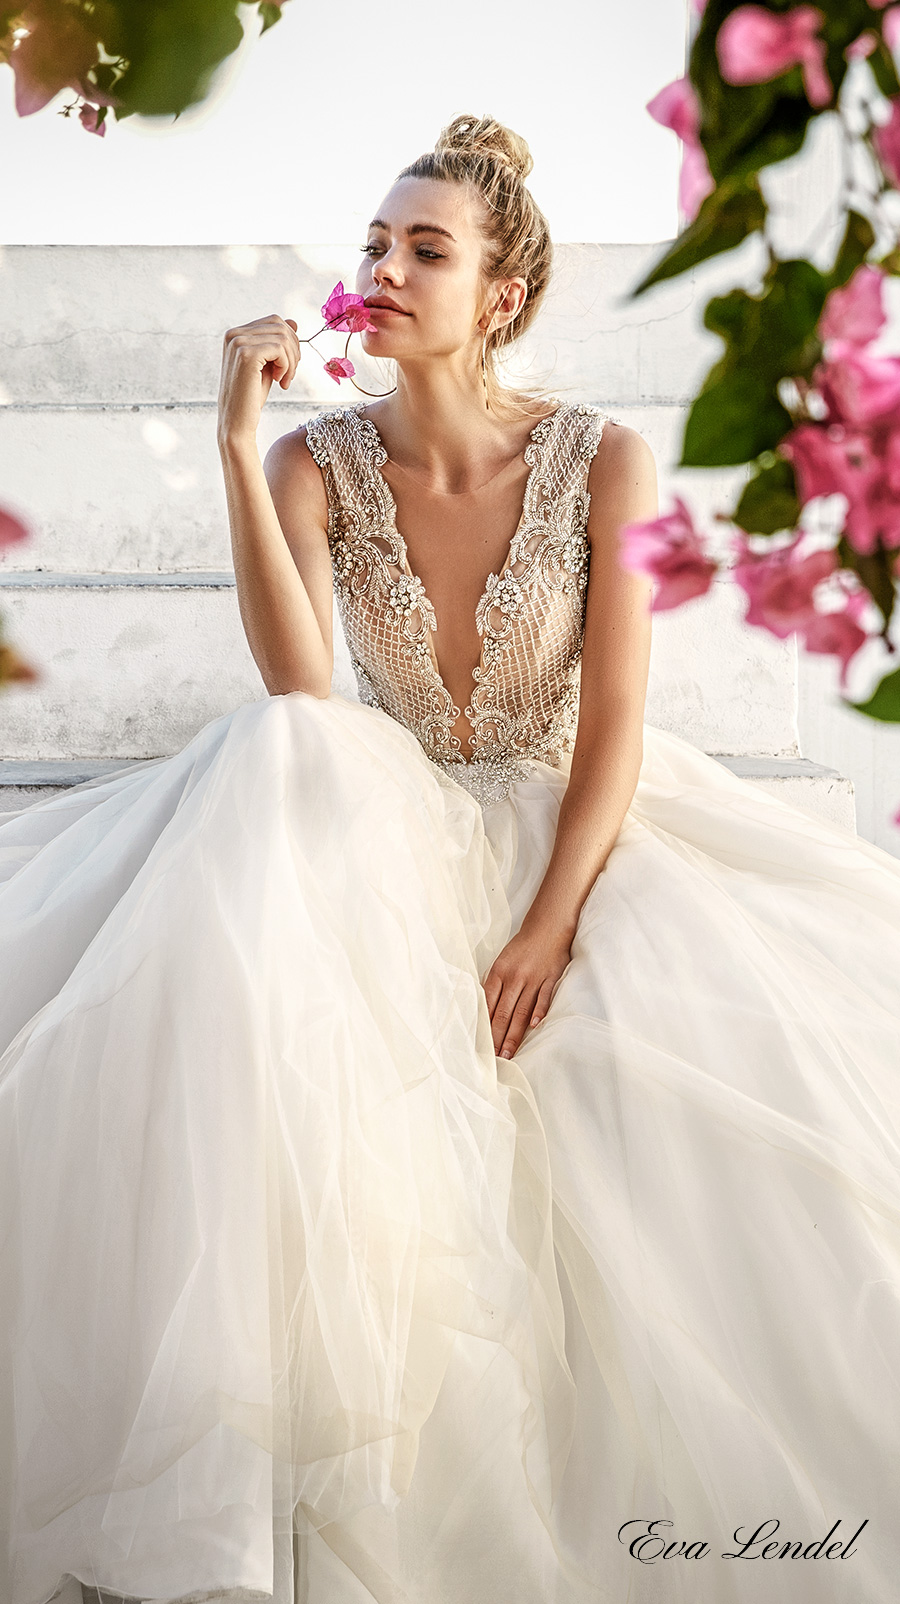 366f091c8fc eva lendel 2017 bridal sleeveless deep plunging v neck heavily embellished  bodice romantic sexy ball gown